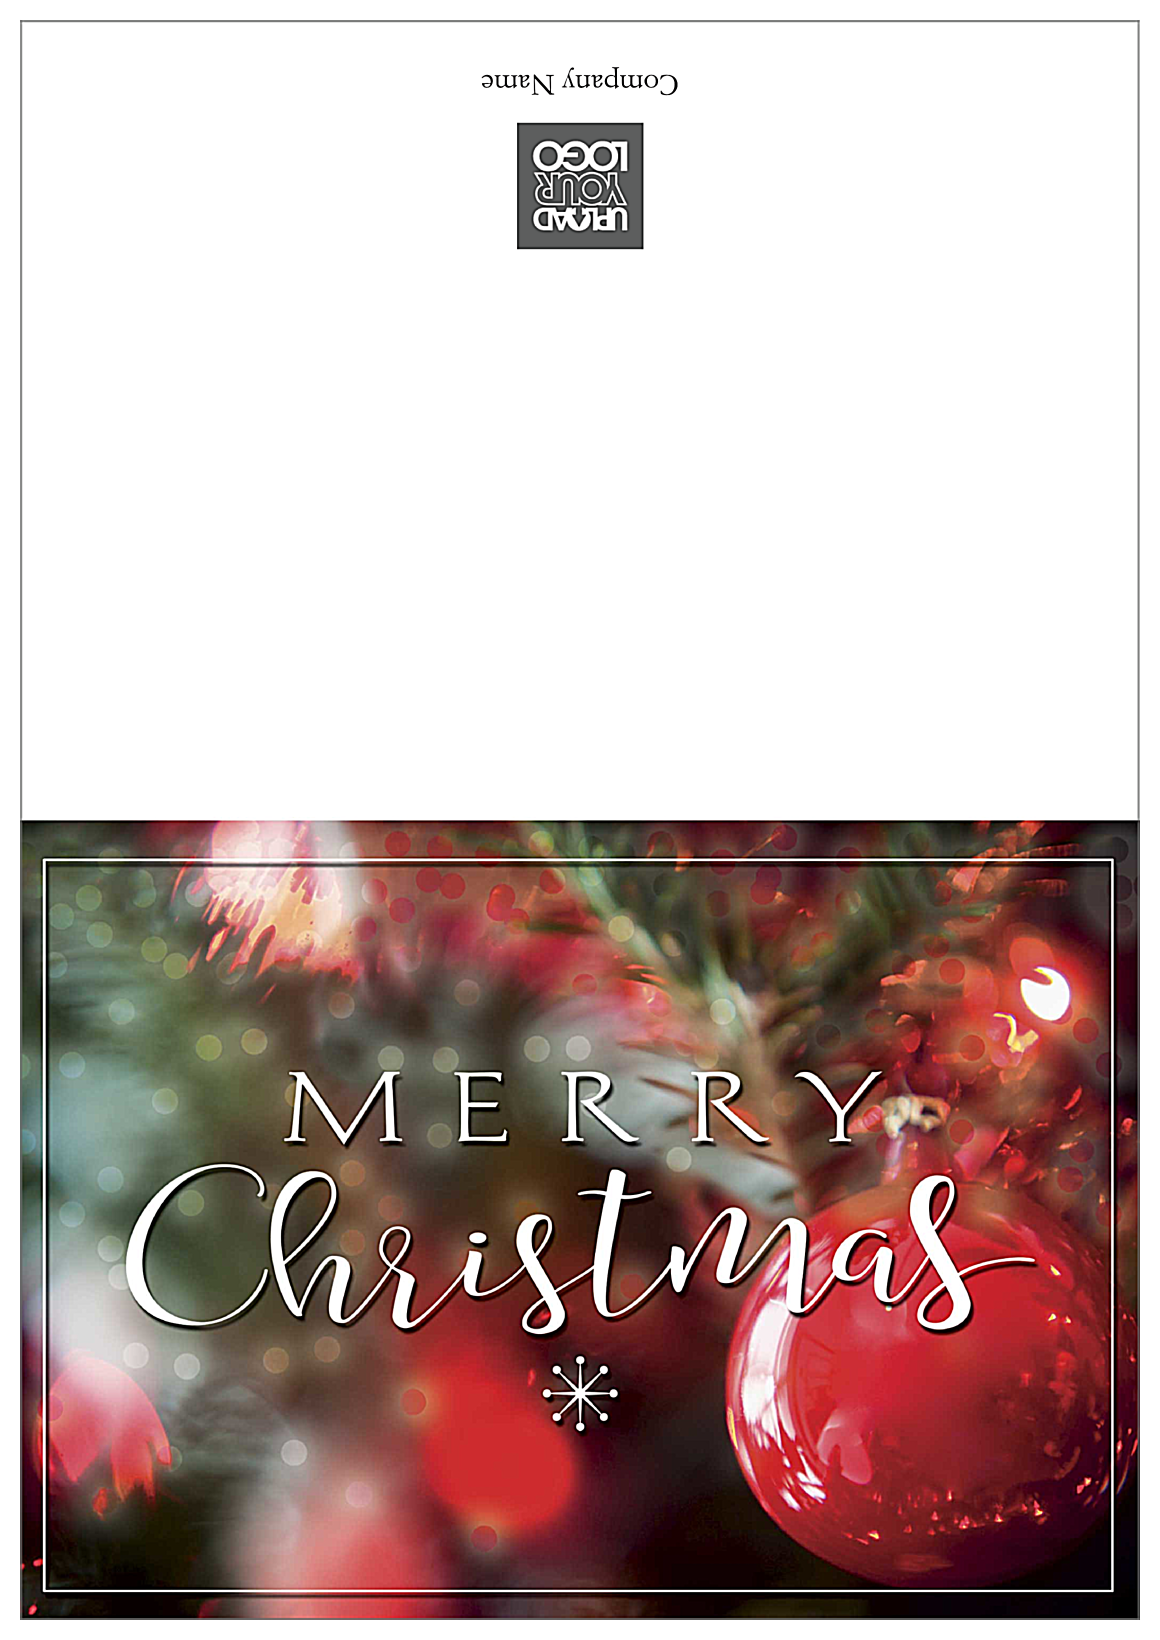 Merry Christmas Ornaments front - Greeting Cards Maker